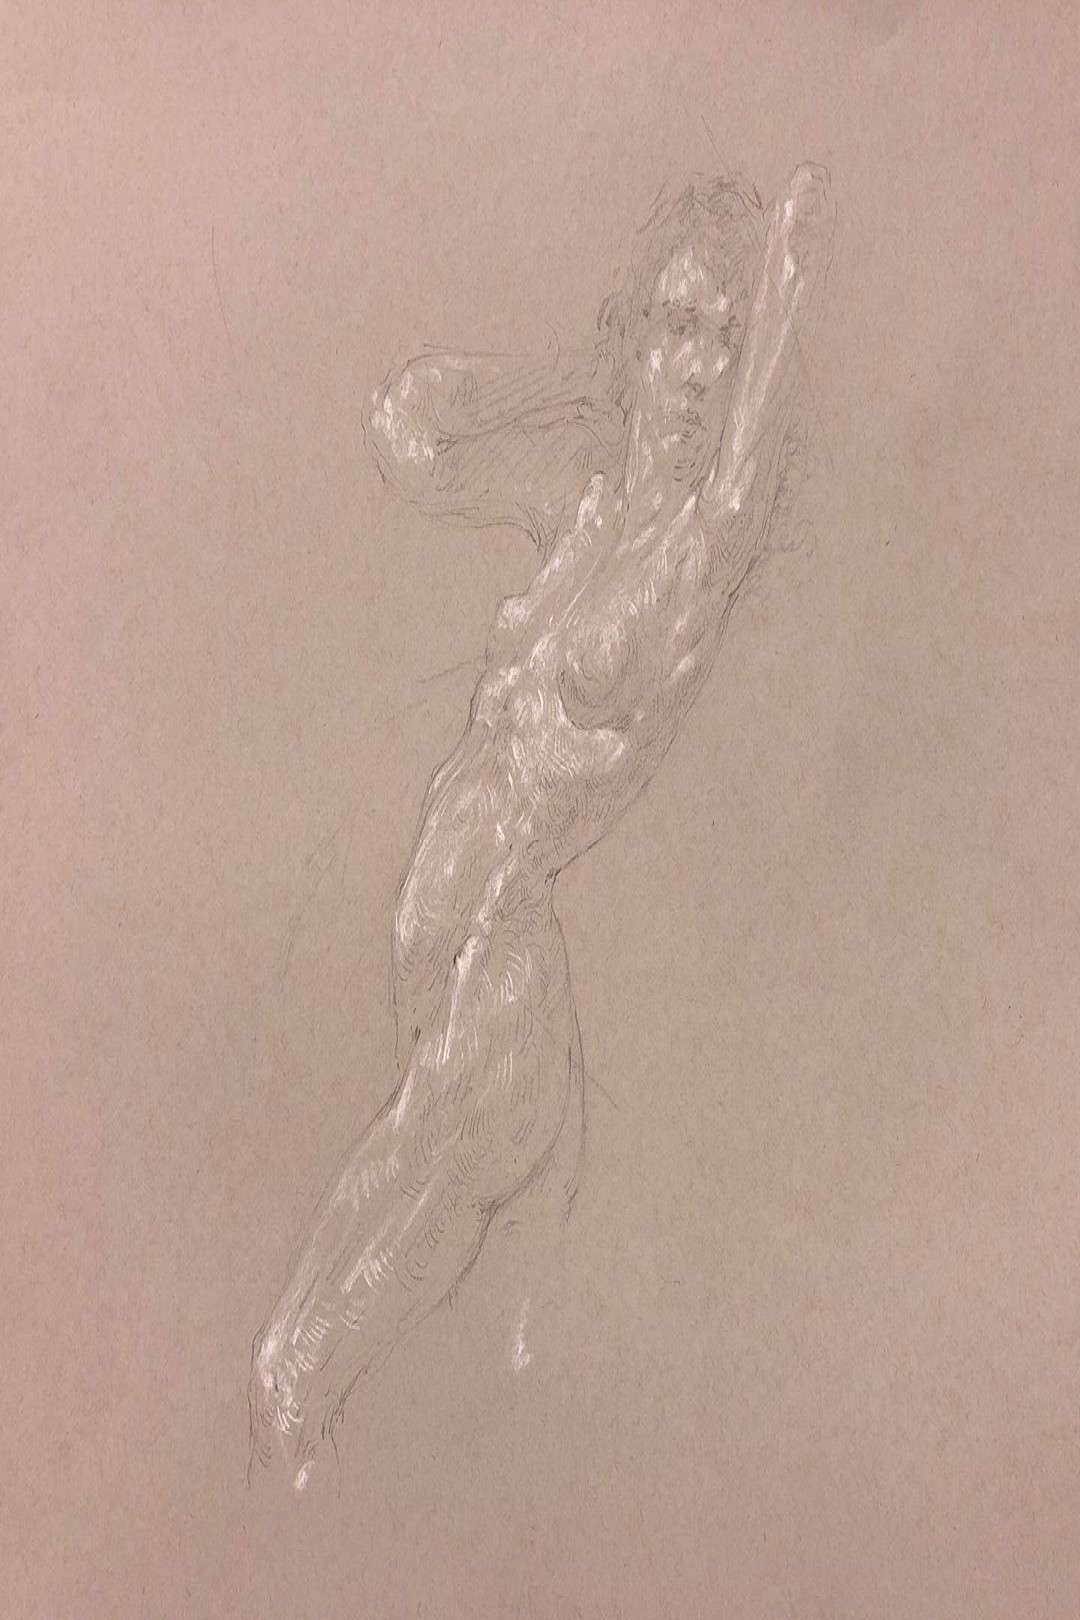 Todays torso long pose demo at our school. Also my homework for